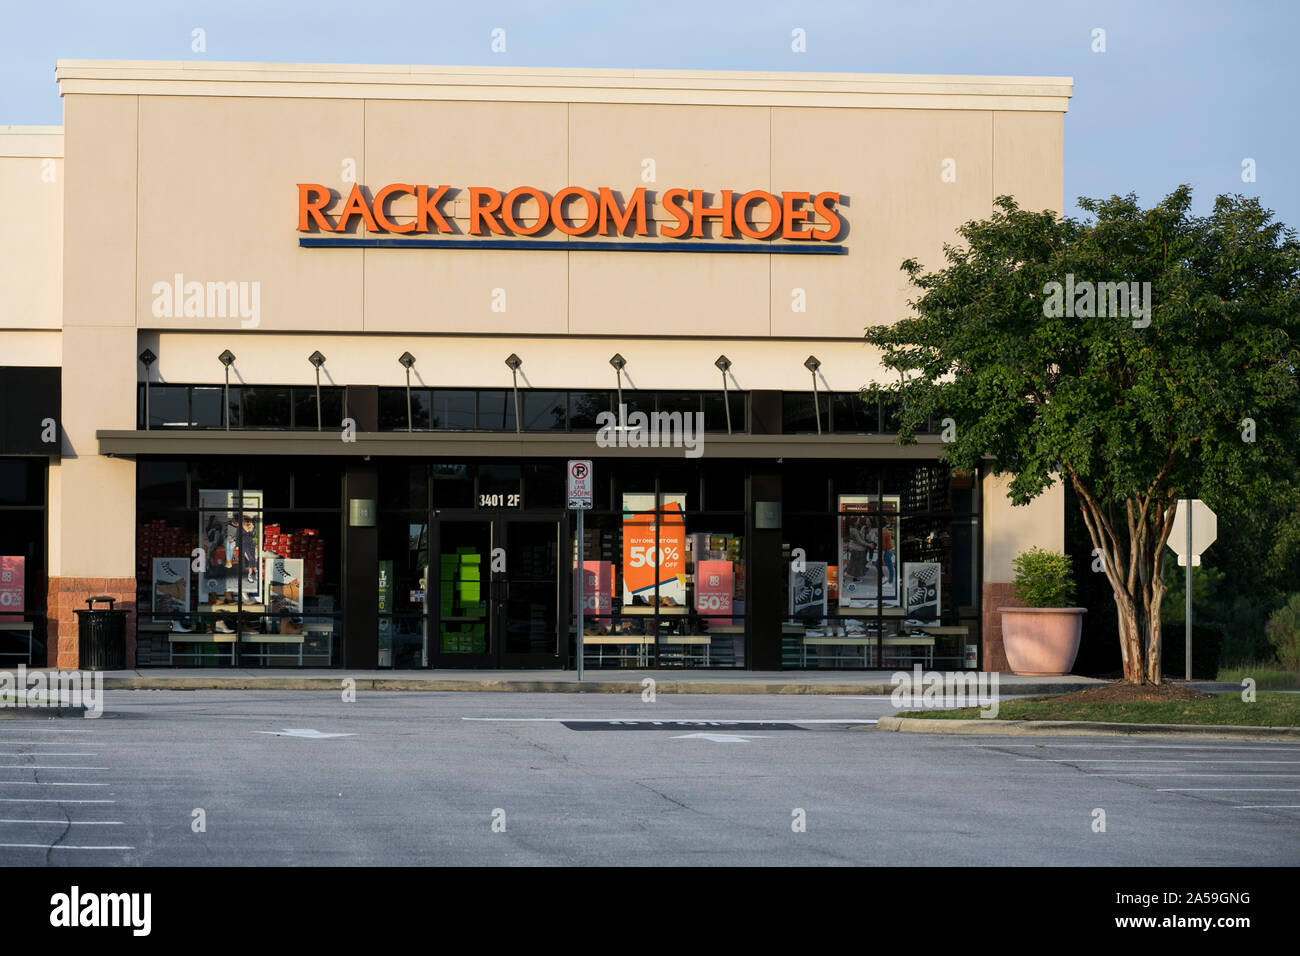 https www alamy com a logo sign outside of a rack room shoes retail store location in wilson north carolina on september 14 2019 image330280988 html